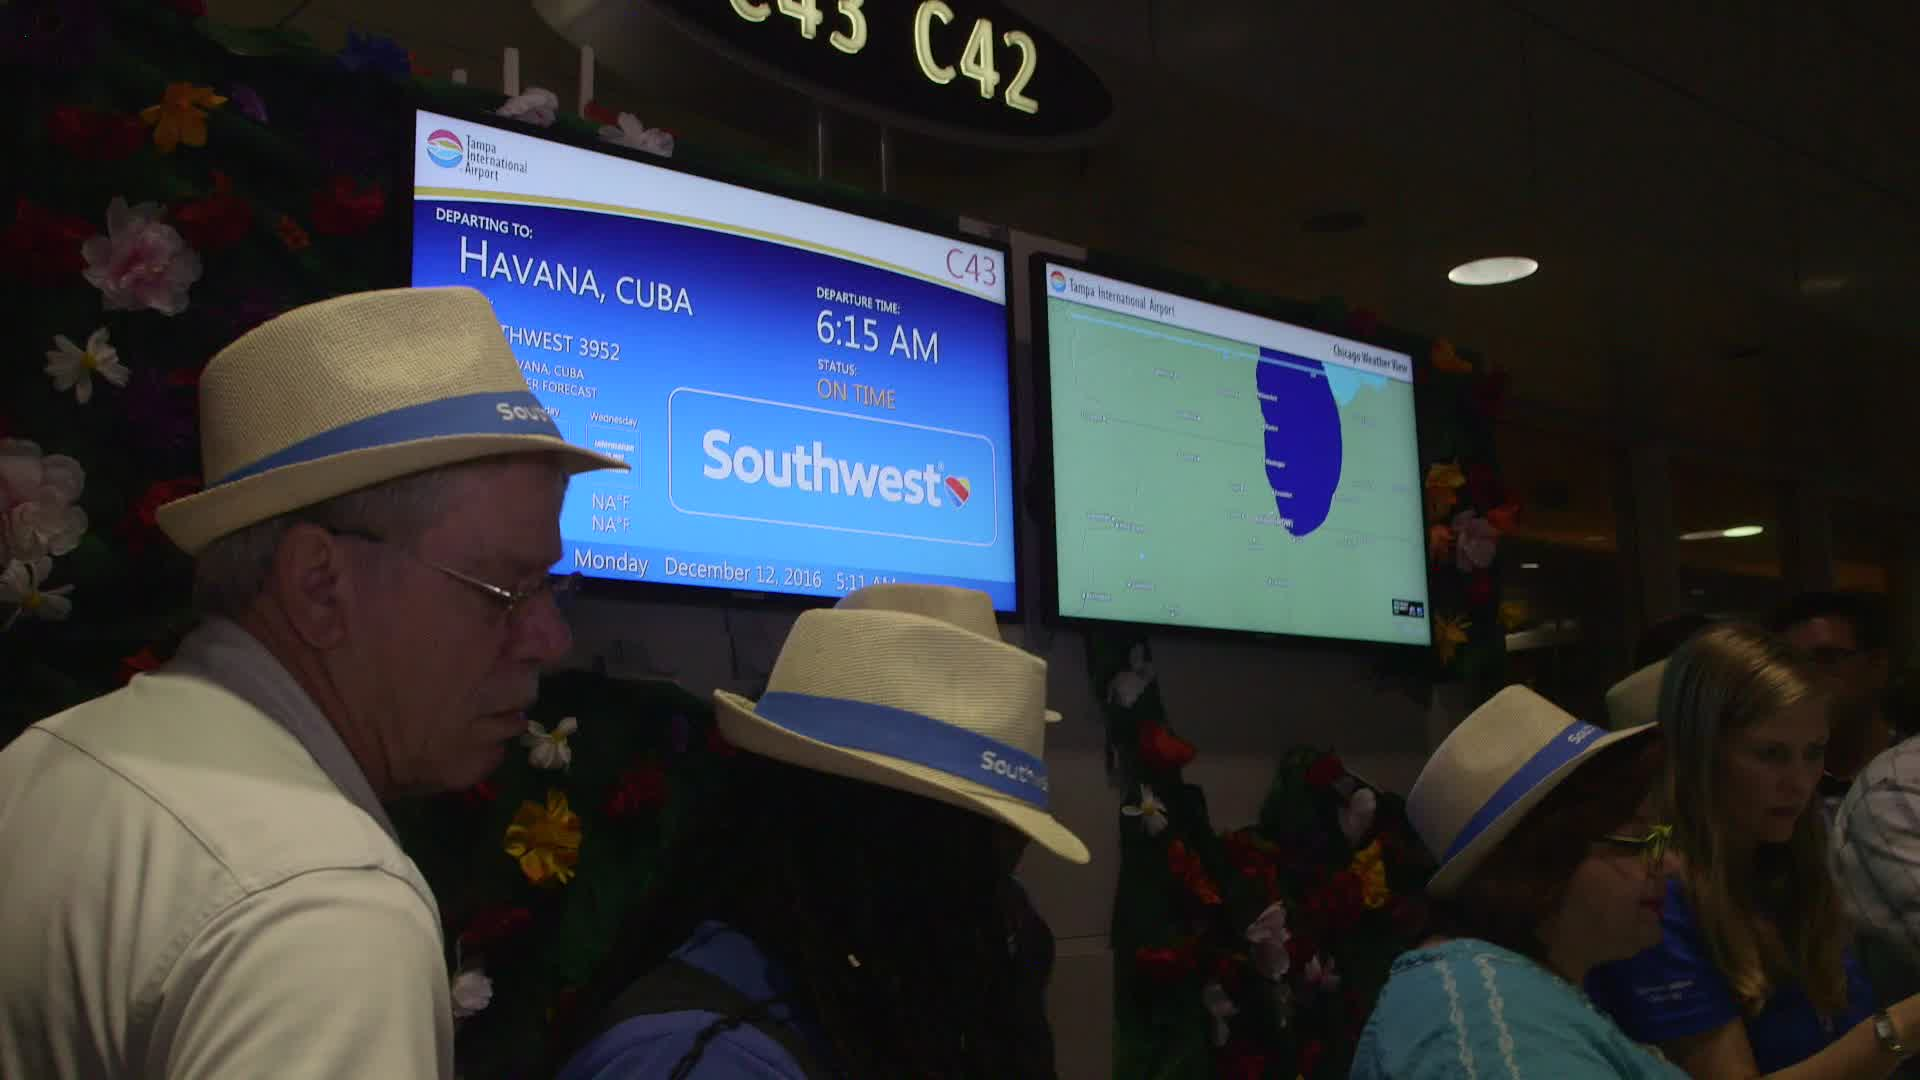 Southwest Airlines Begins Cuba Service Nonstop From Ft. Lauderdale To Varadero